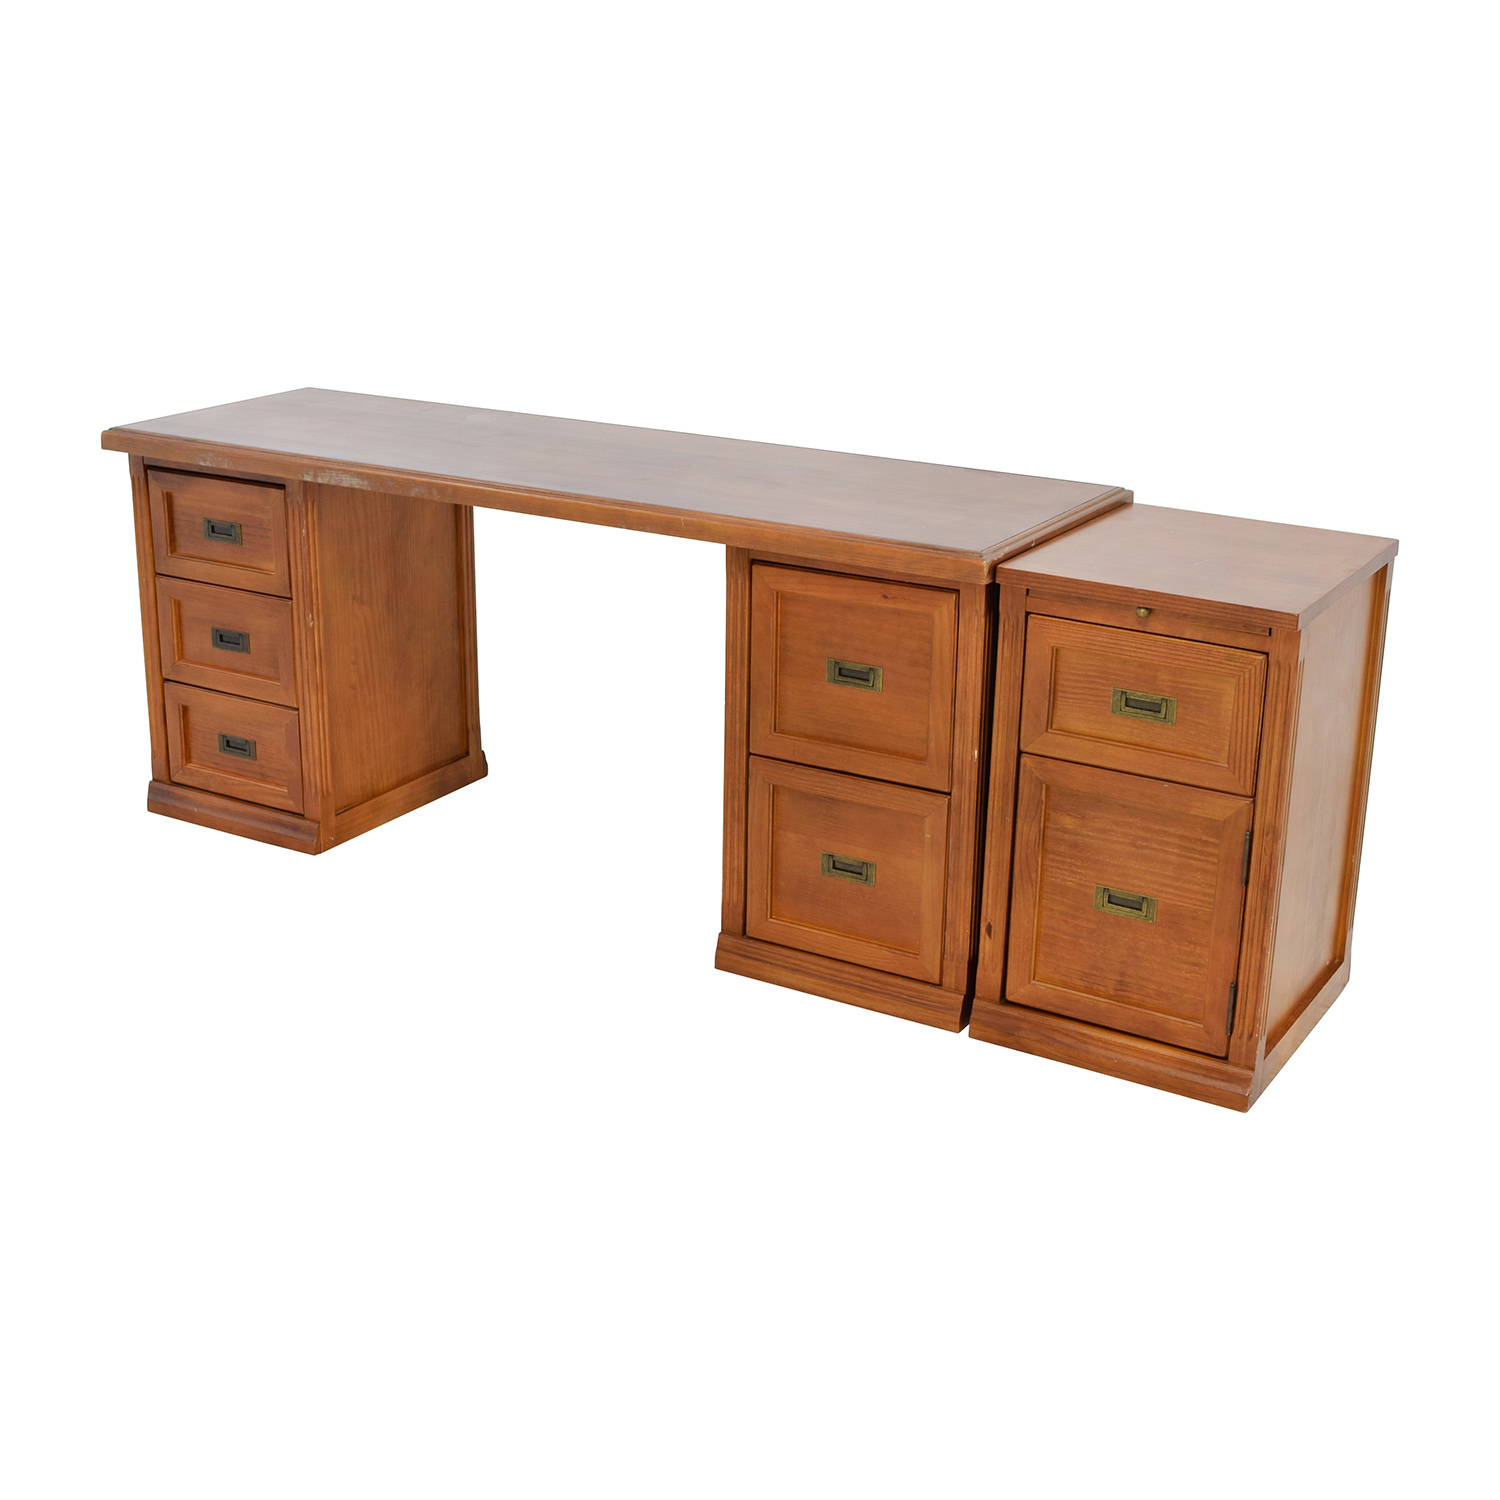 64 unkown large wood desk with three filing cabinets tables